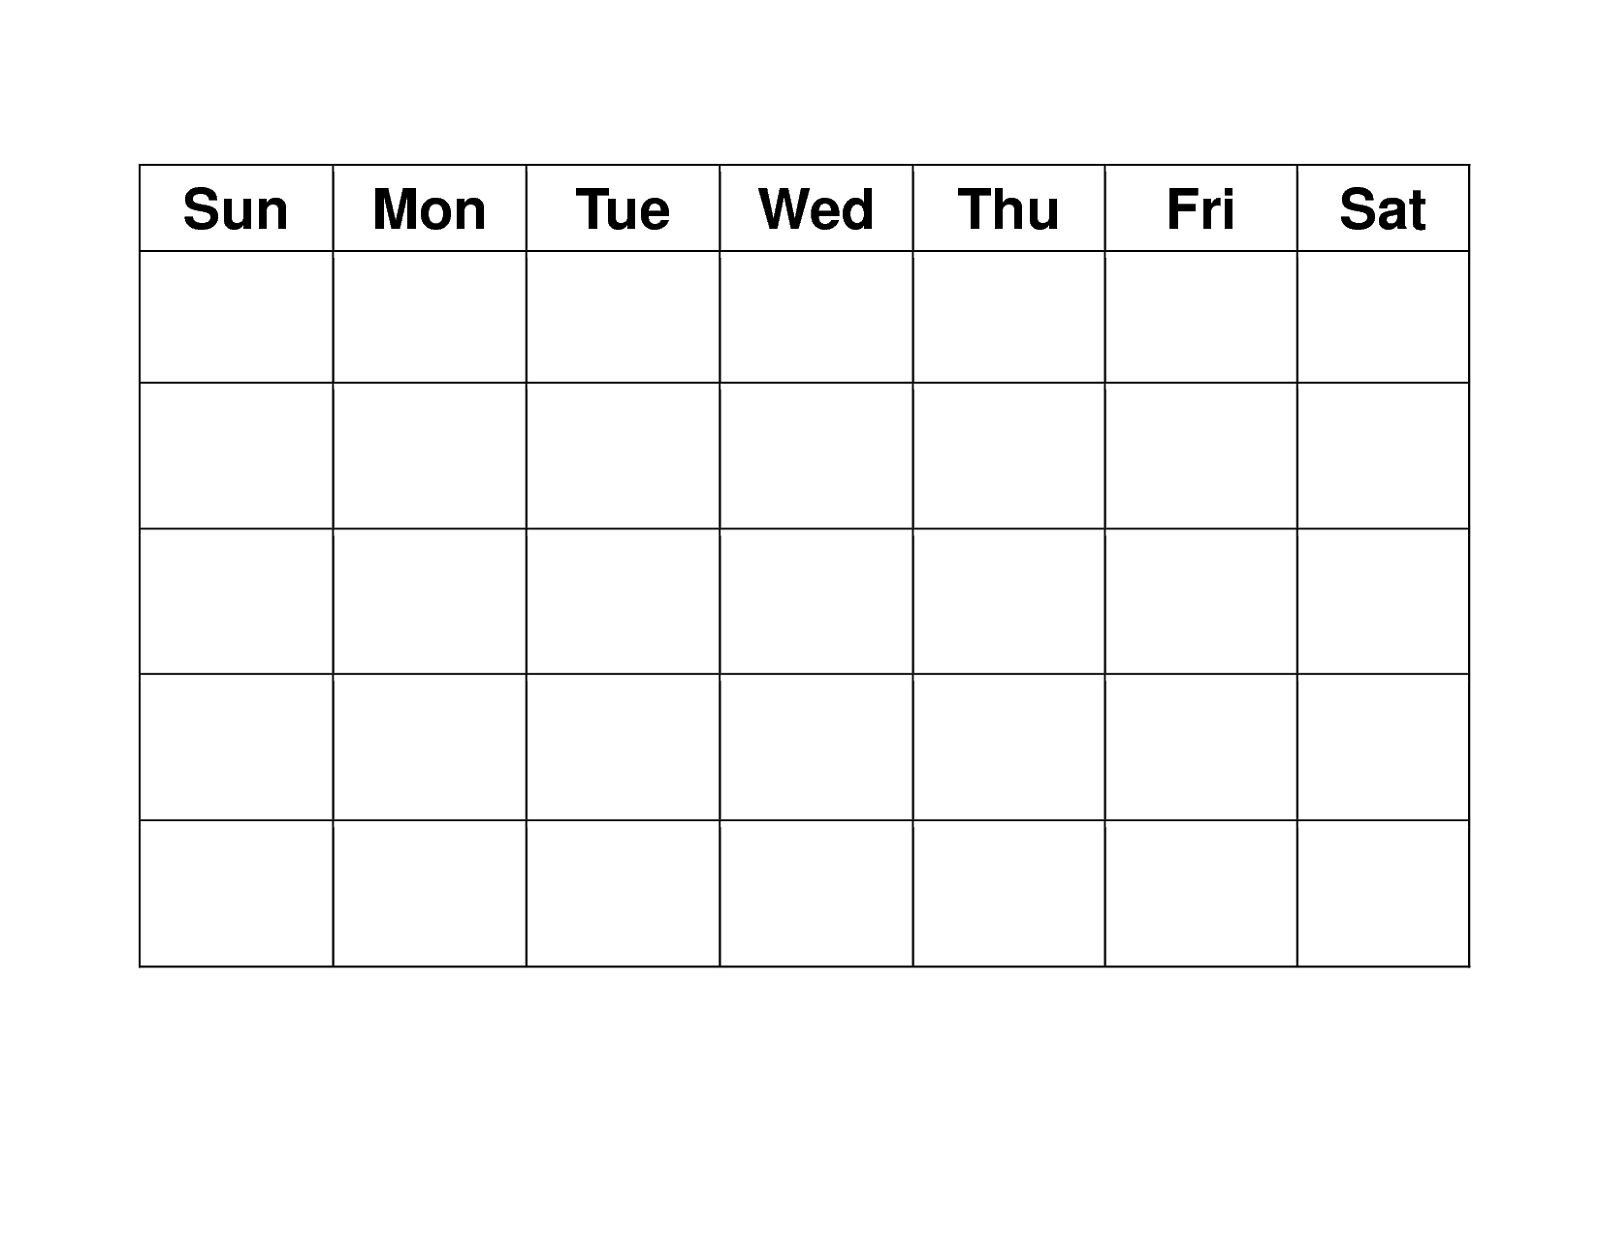 Get Blank Weekly Calendar To Fill In | Blank Calendar Calendar To Fill In And Print